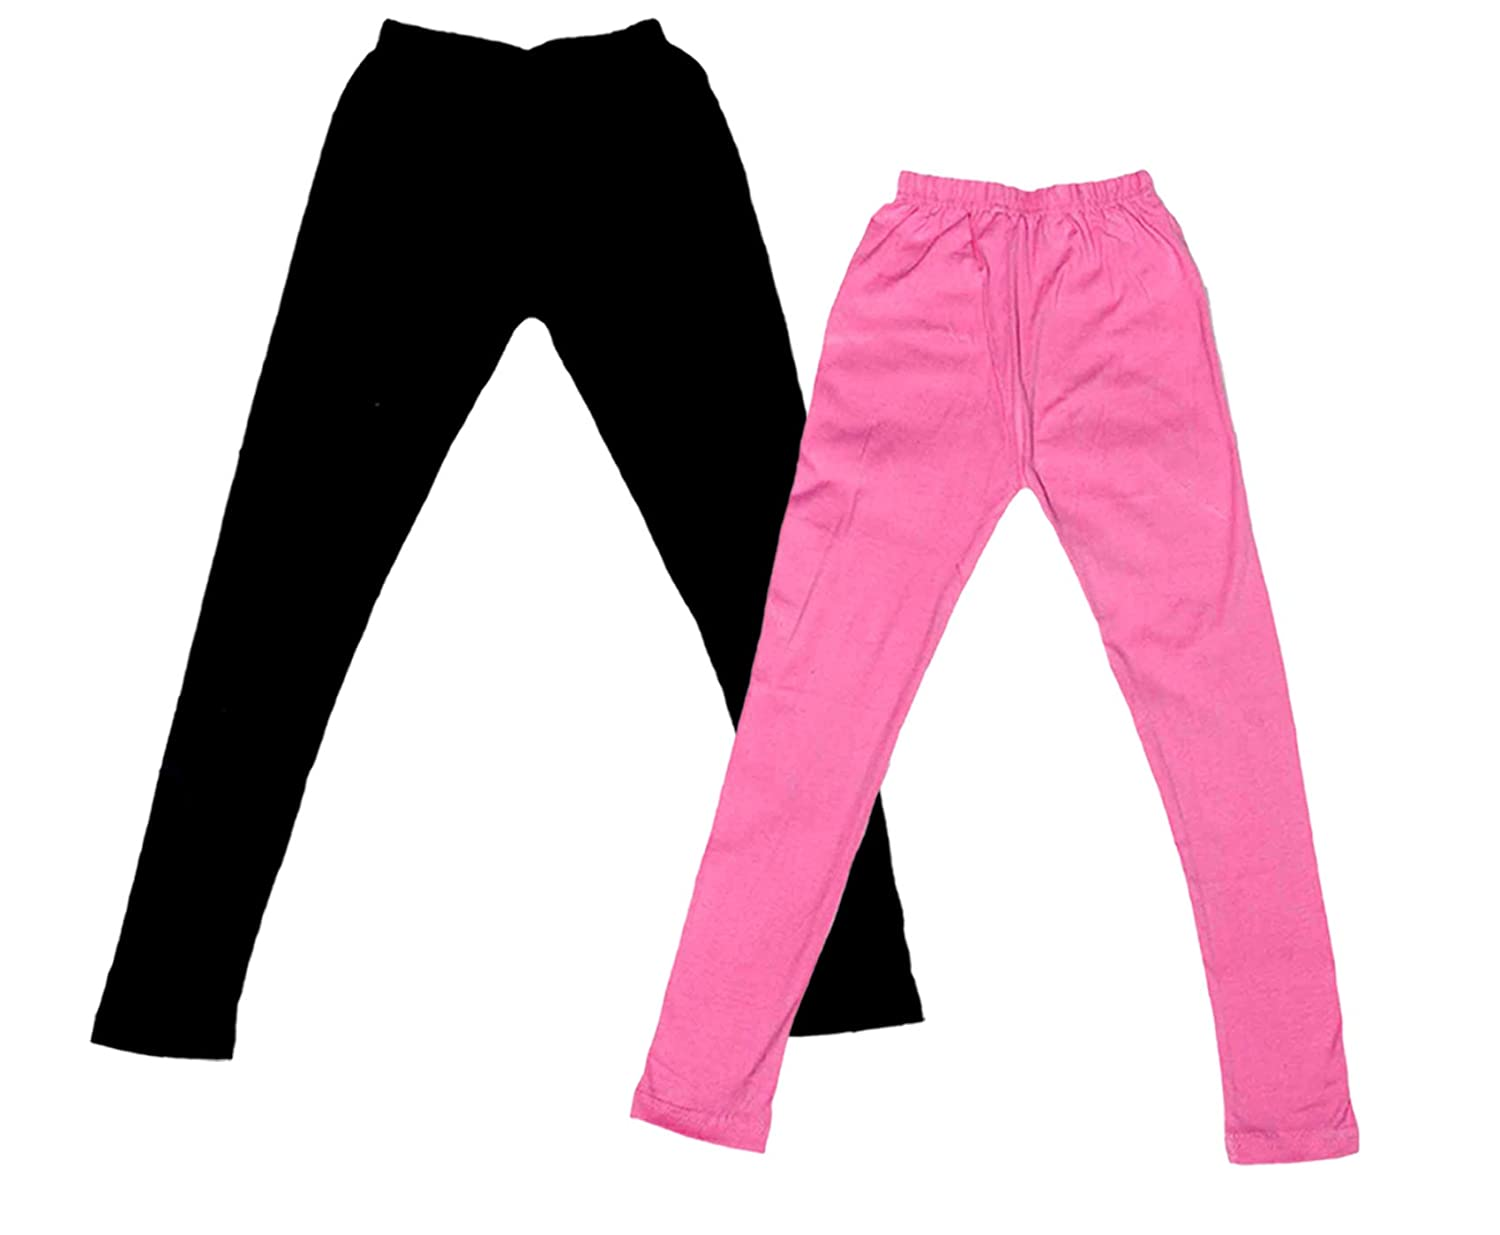 Indistar Little Girls Super Soft Cotton Leggings Combo Pack Of 2